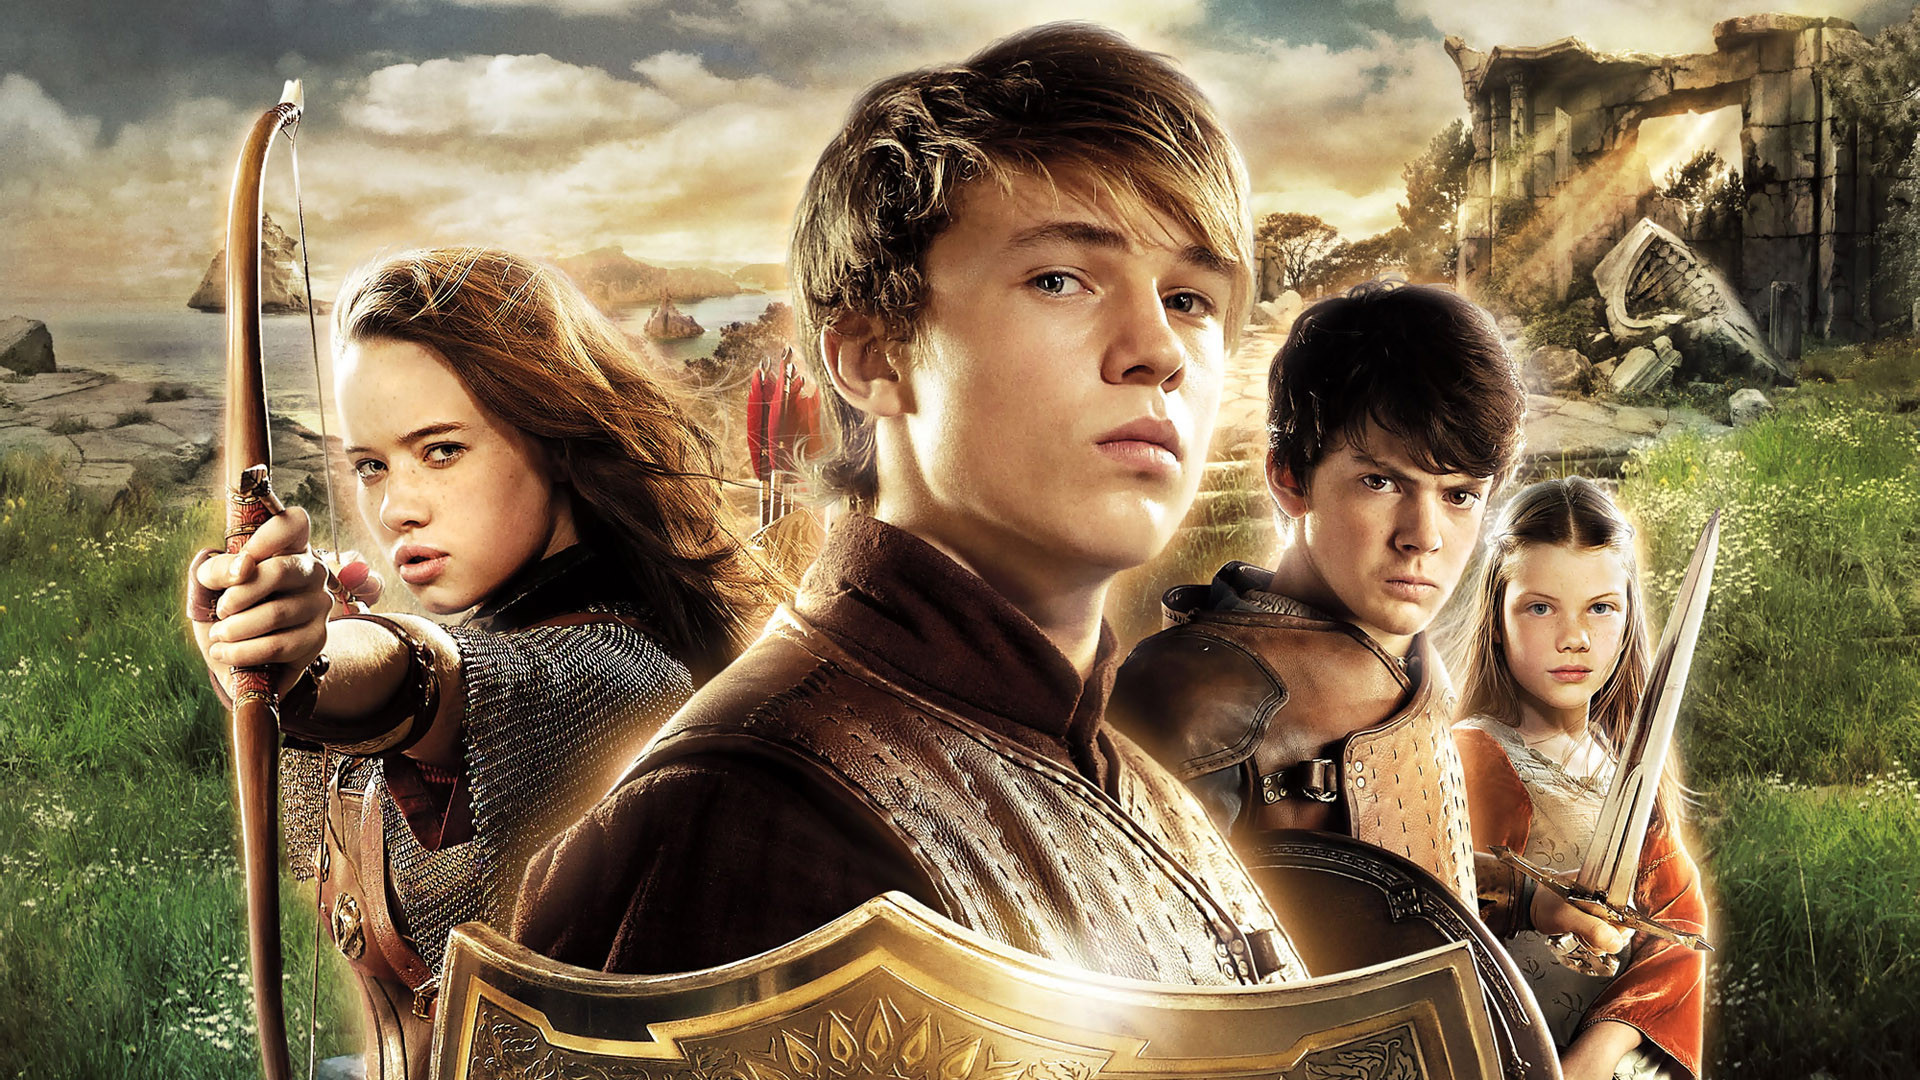 the chronicles of narnia prince caspian movie download in hindi 720p